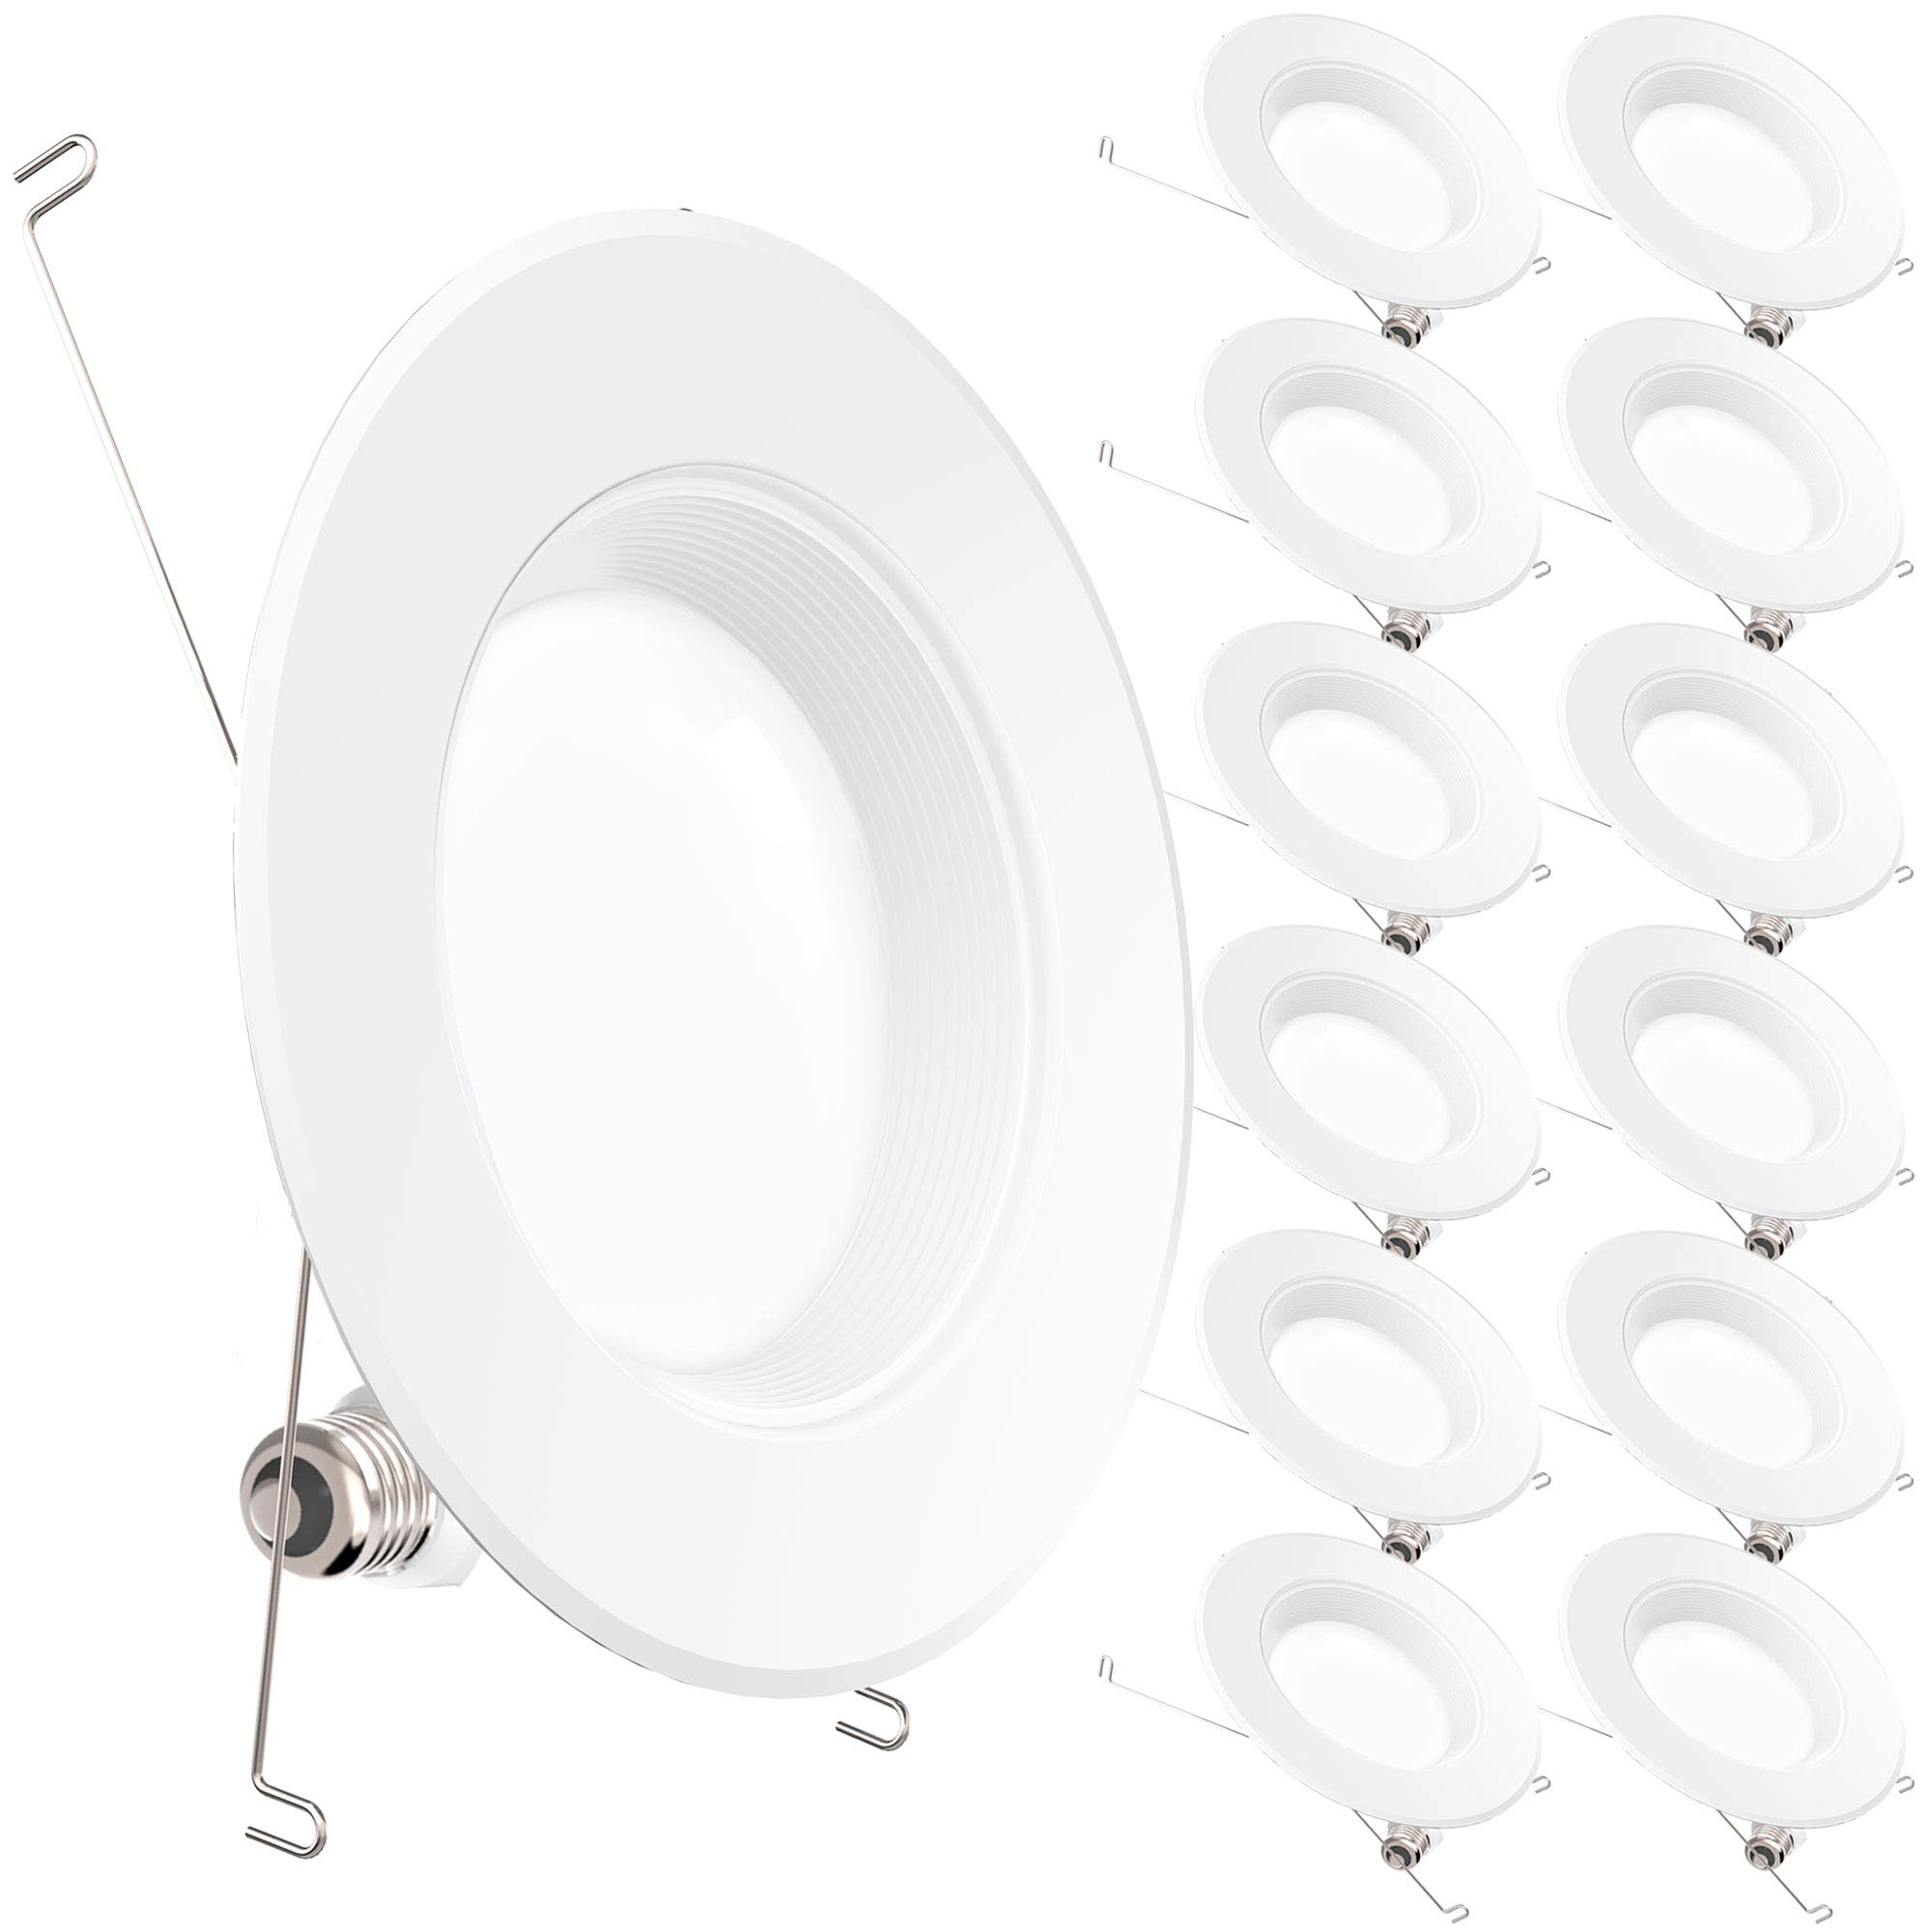 Sunco Lighting 12 Pack 5/6 Inch LED Recessed Downlight, Baffle Trim, Dimmable, 13W=75W, 5000K Daylight, 965 LM, Damp Rated, Simple Retrofit Installation - UL + Energy Star